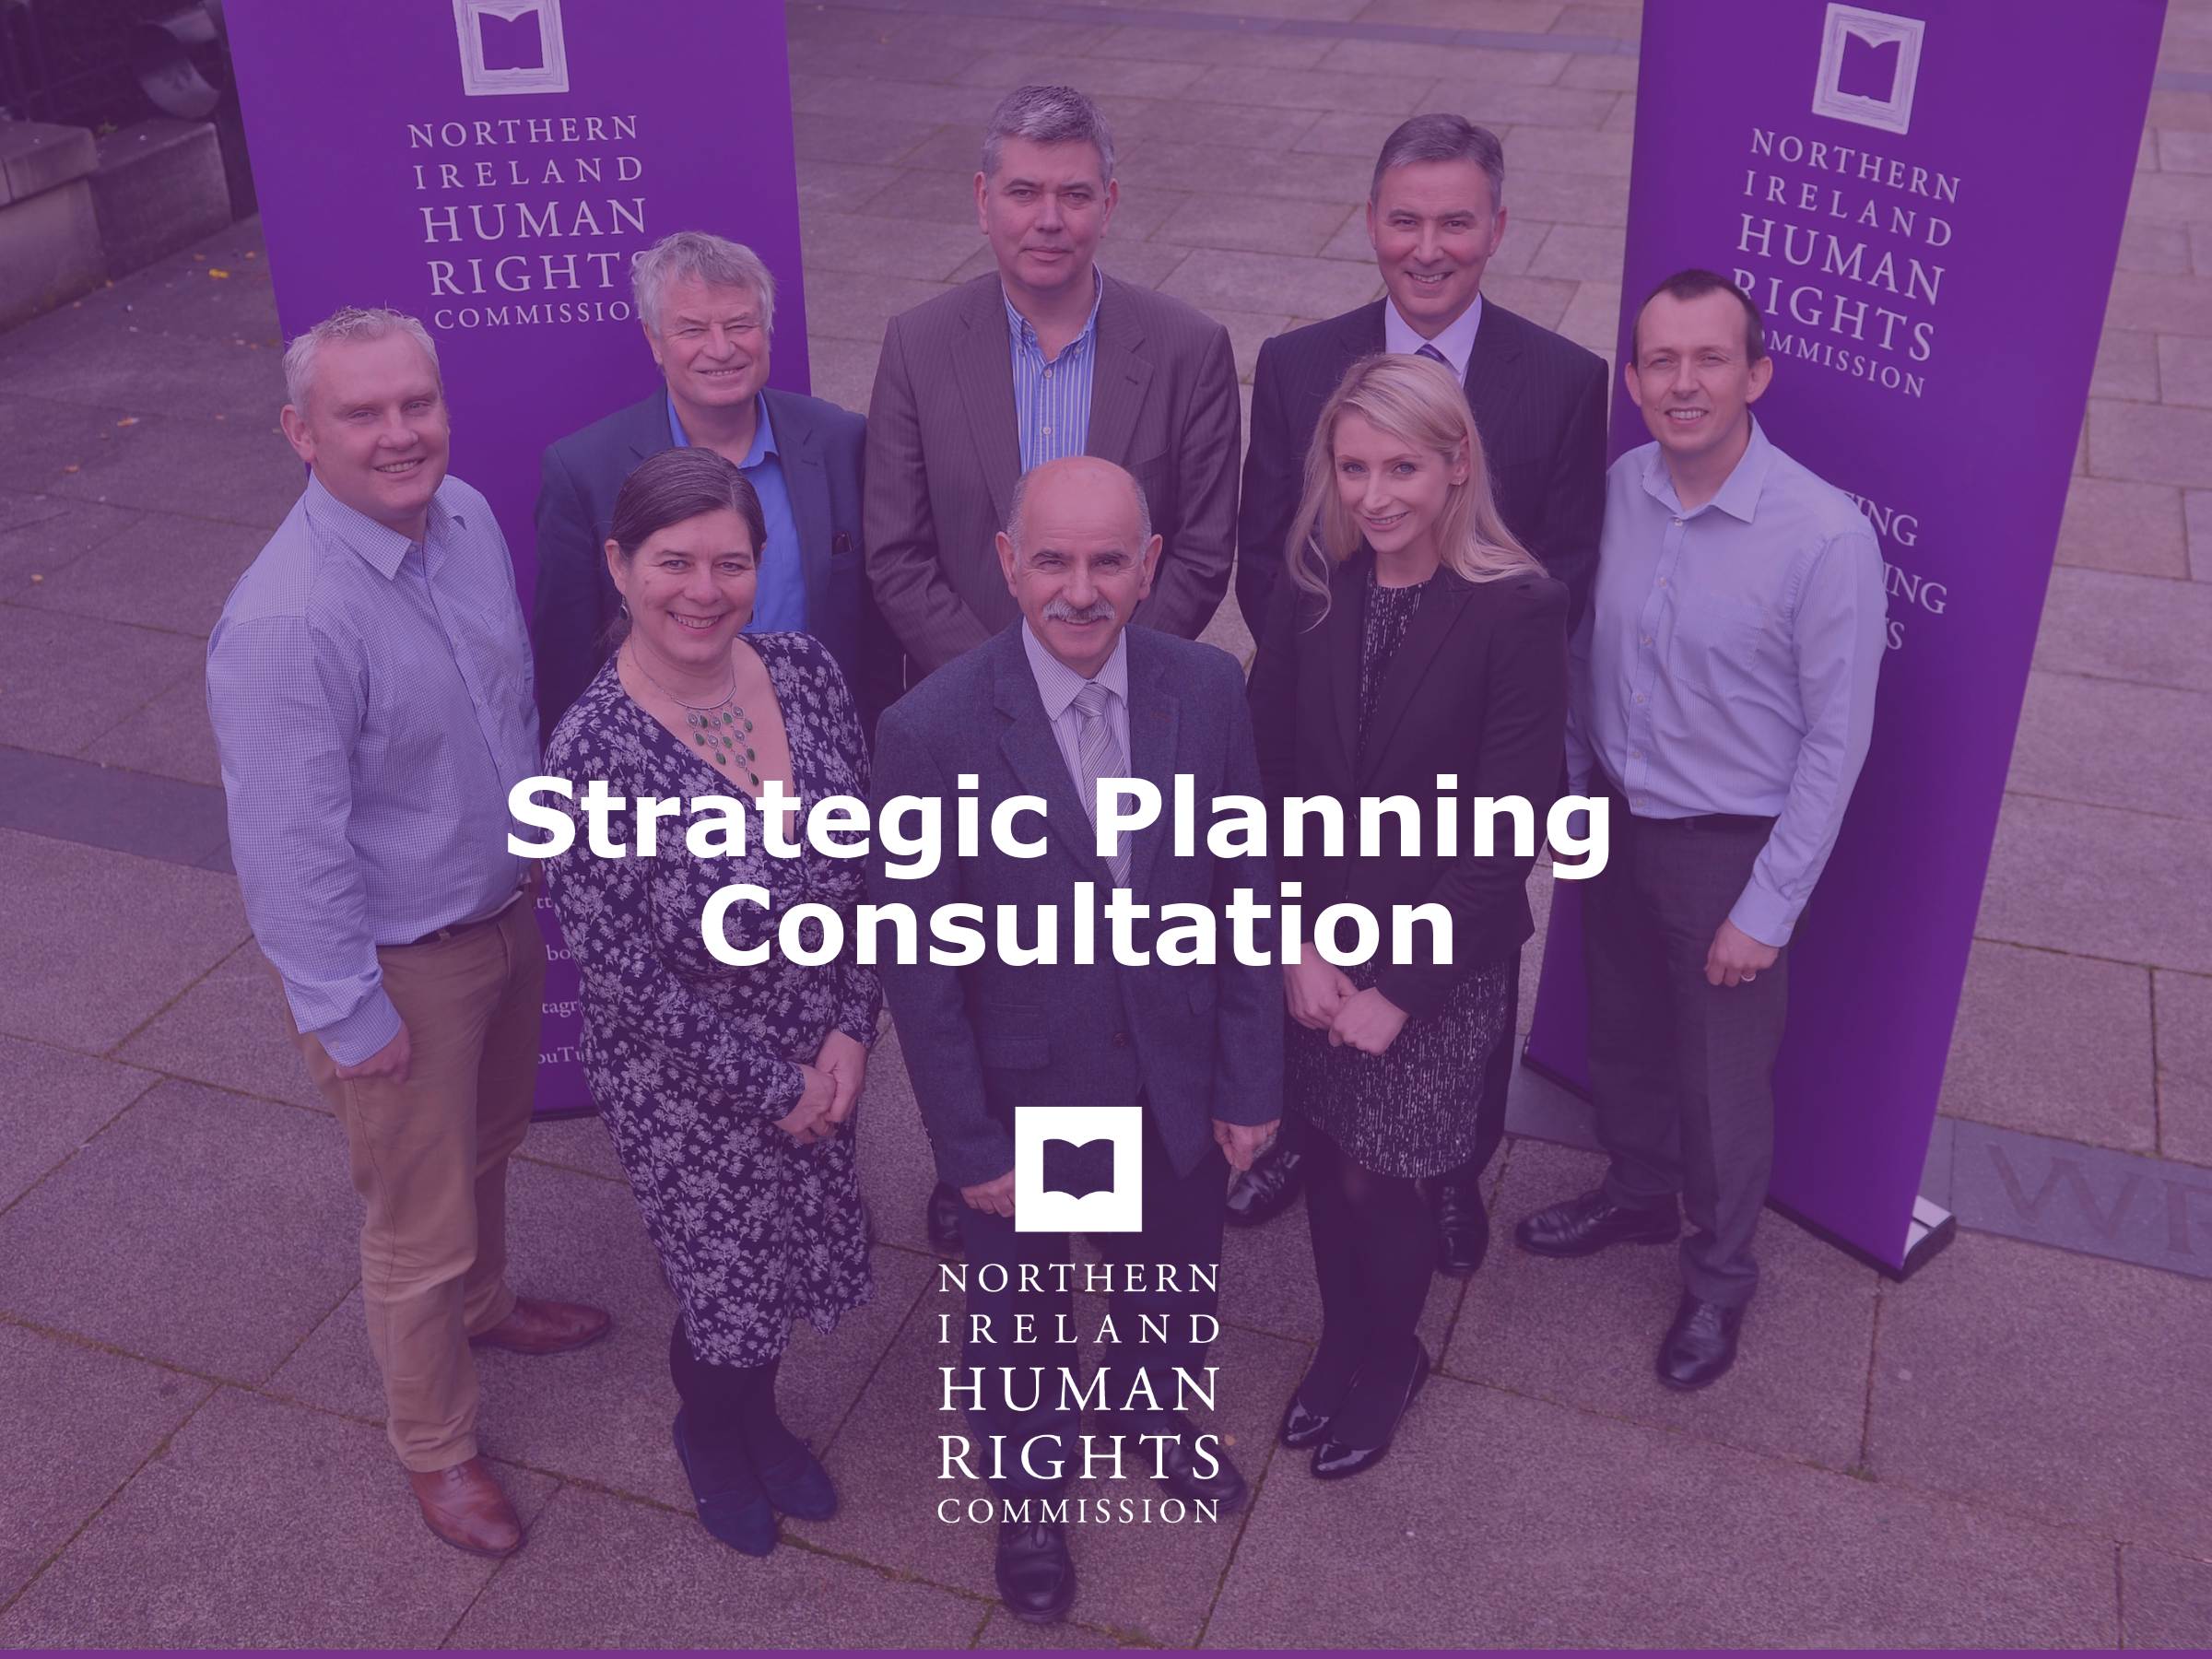 NI Human Rights Commission - Draft Strategic Plan 2019 - 2022 Consultation